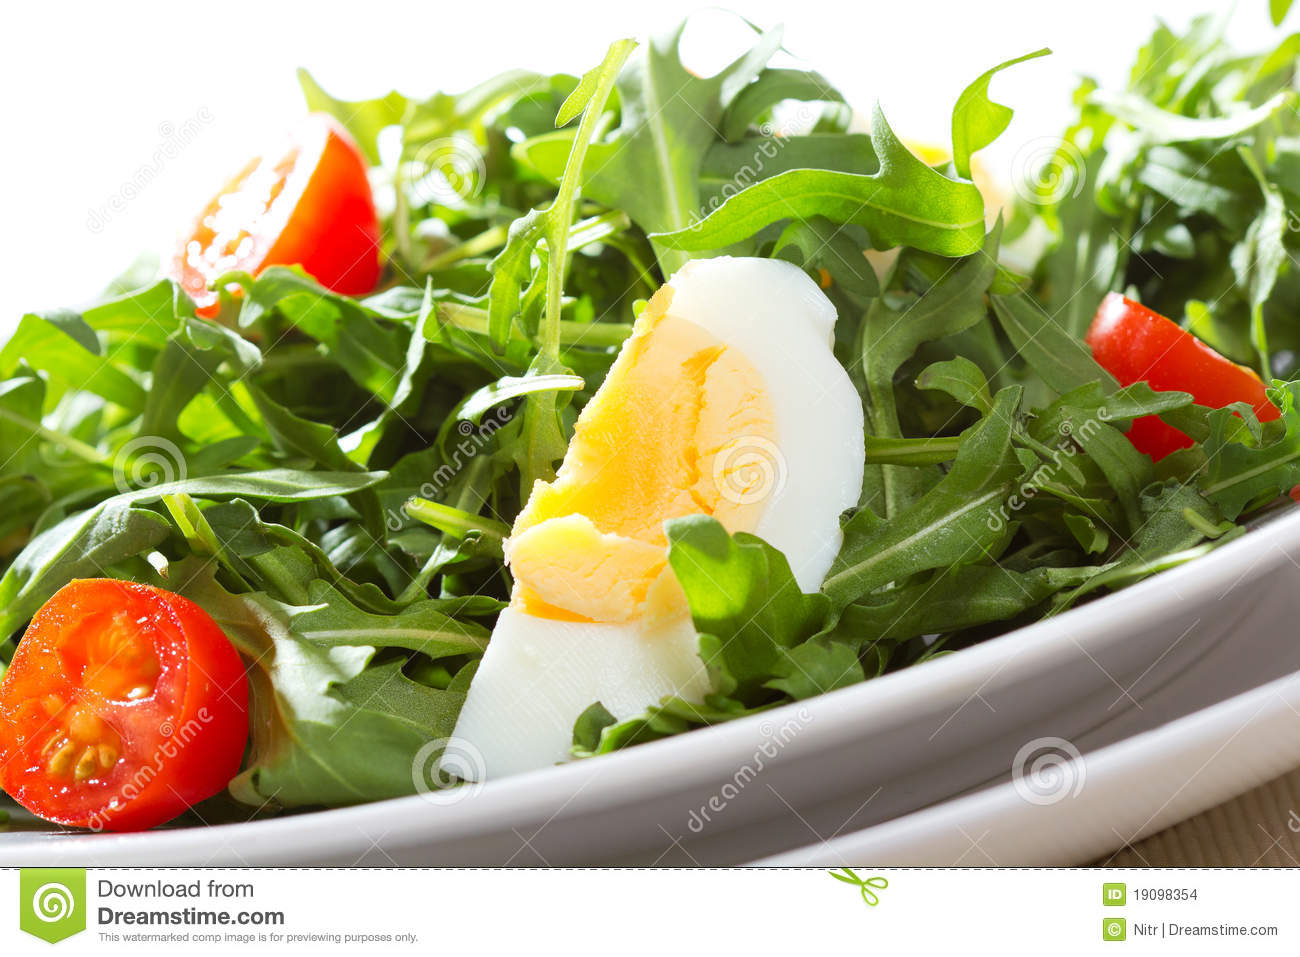 Salad Stock Images - Image: 19098354